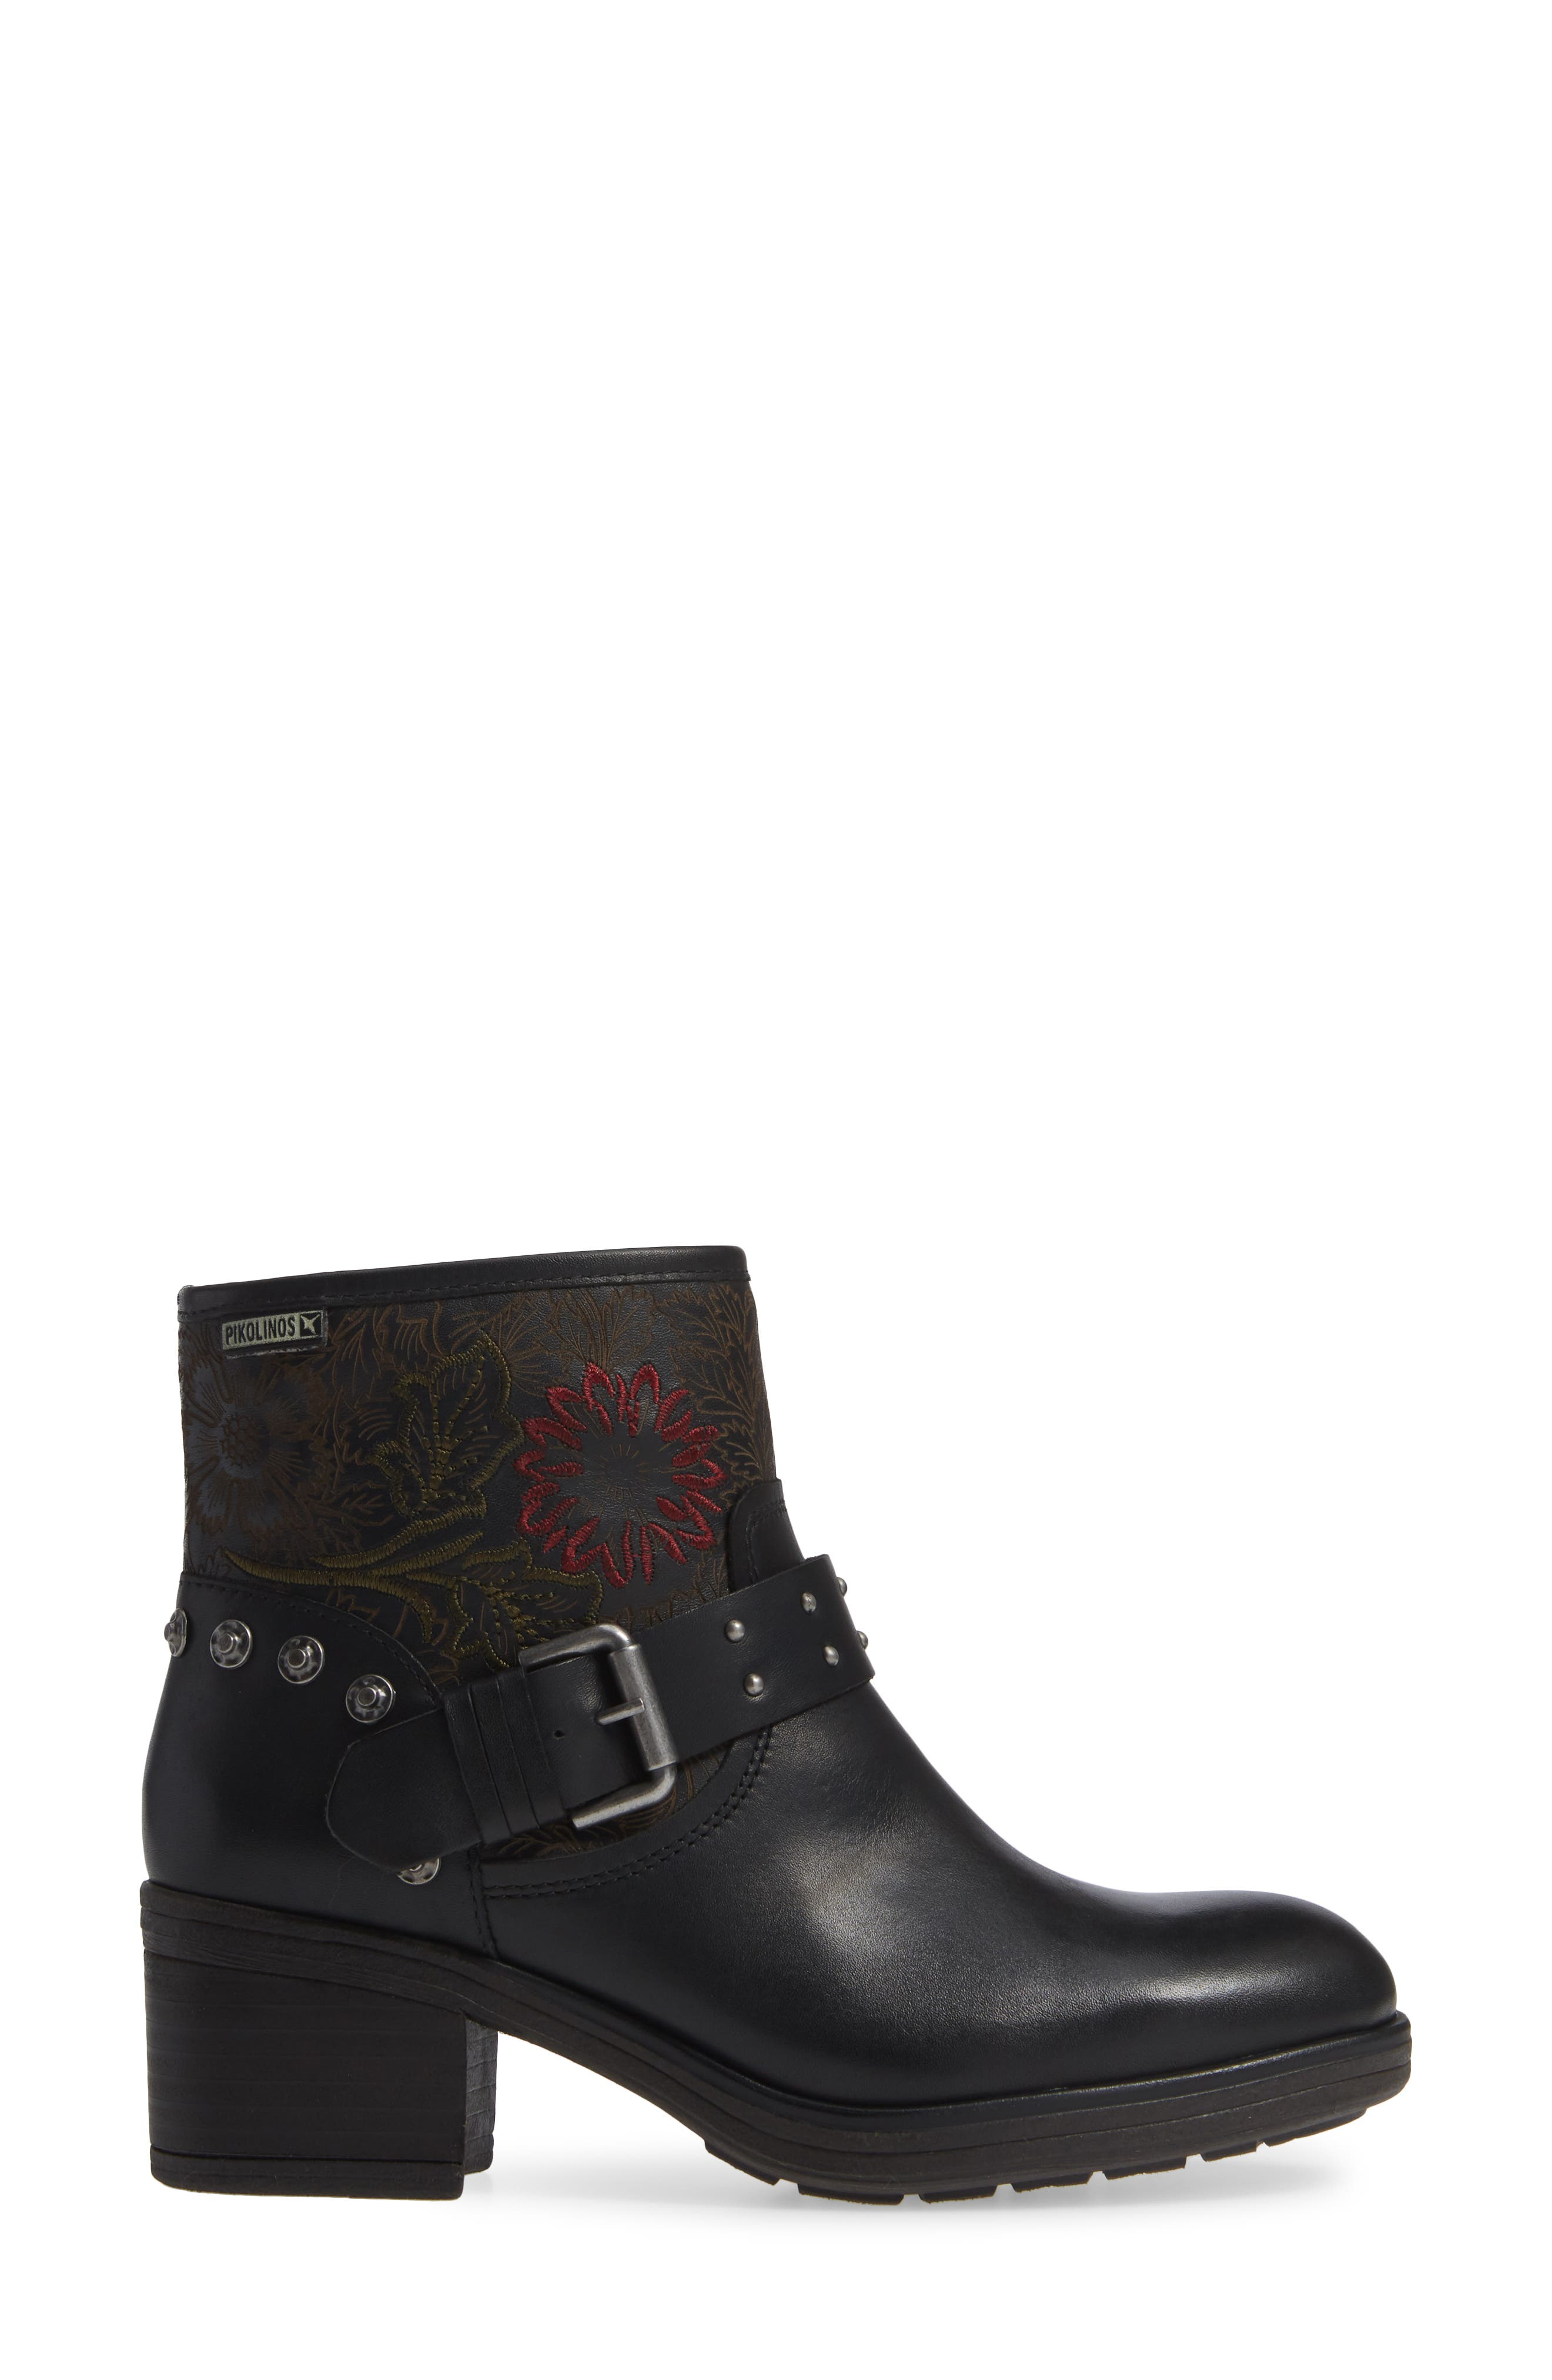 Lyon Embroidered Engineer Bootie,                             Alternate thumbnail 3, color,                             BLACK LEATHER